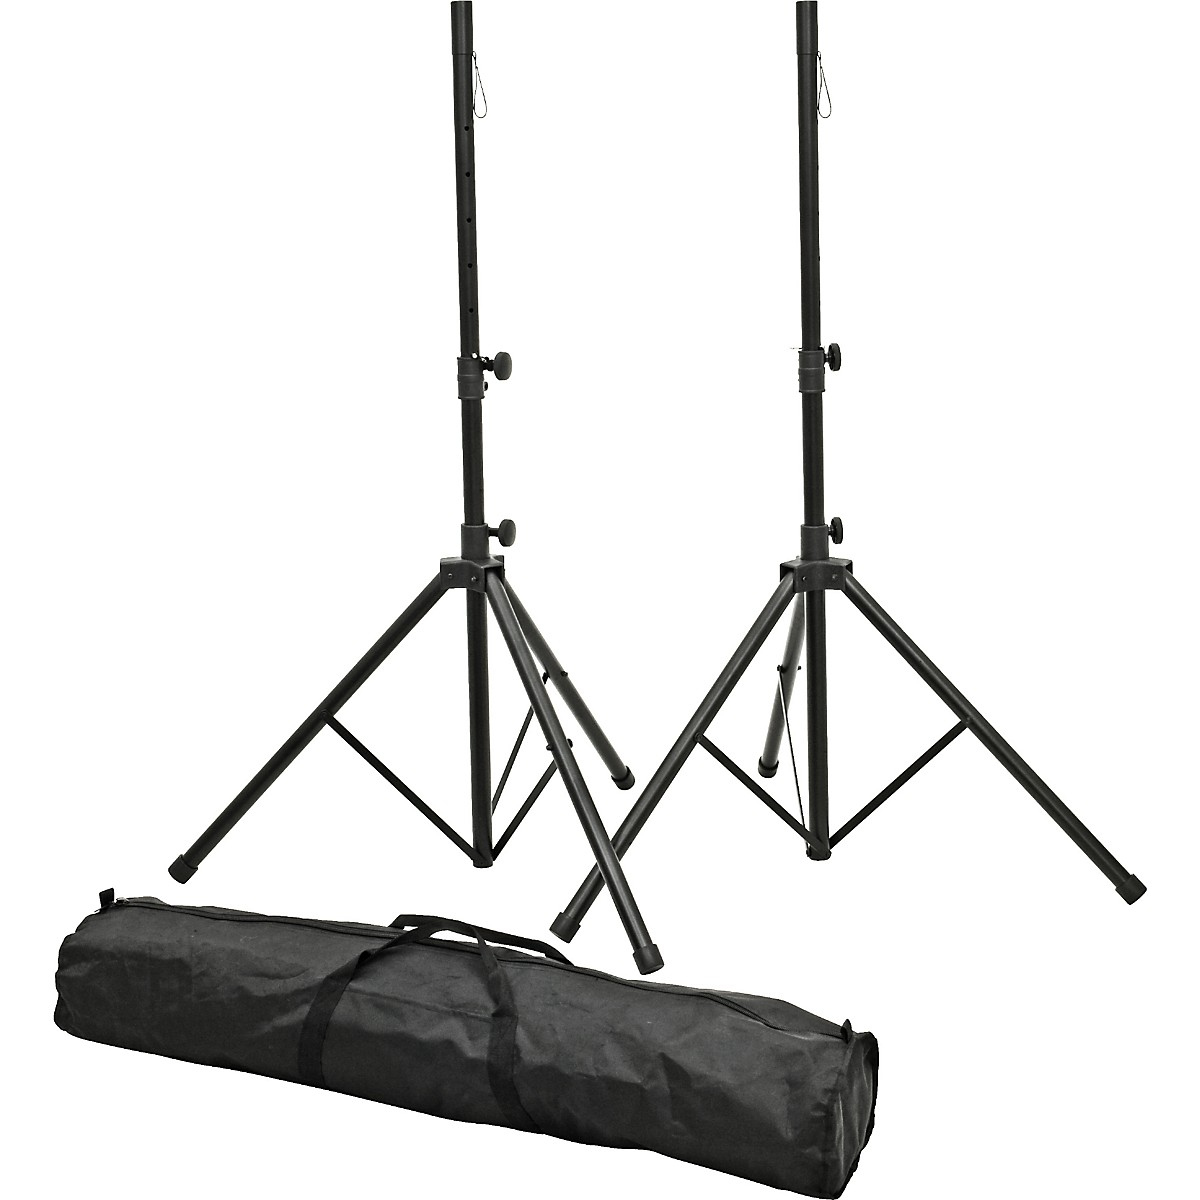 Proline PLSP1 Speaker Stand Set with Bag